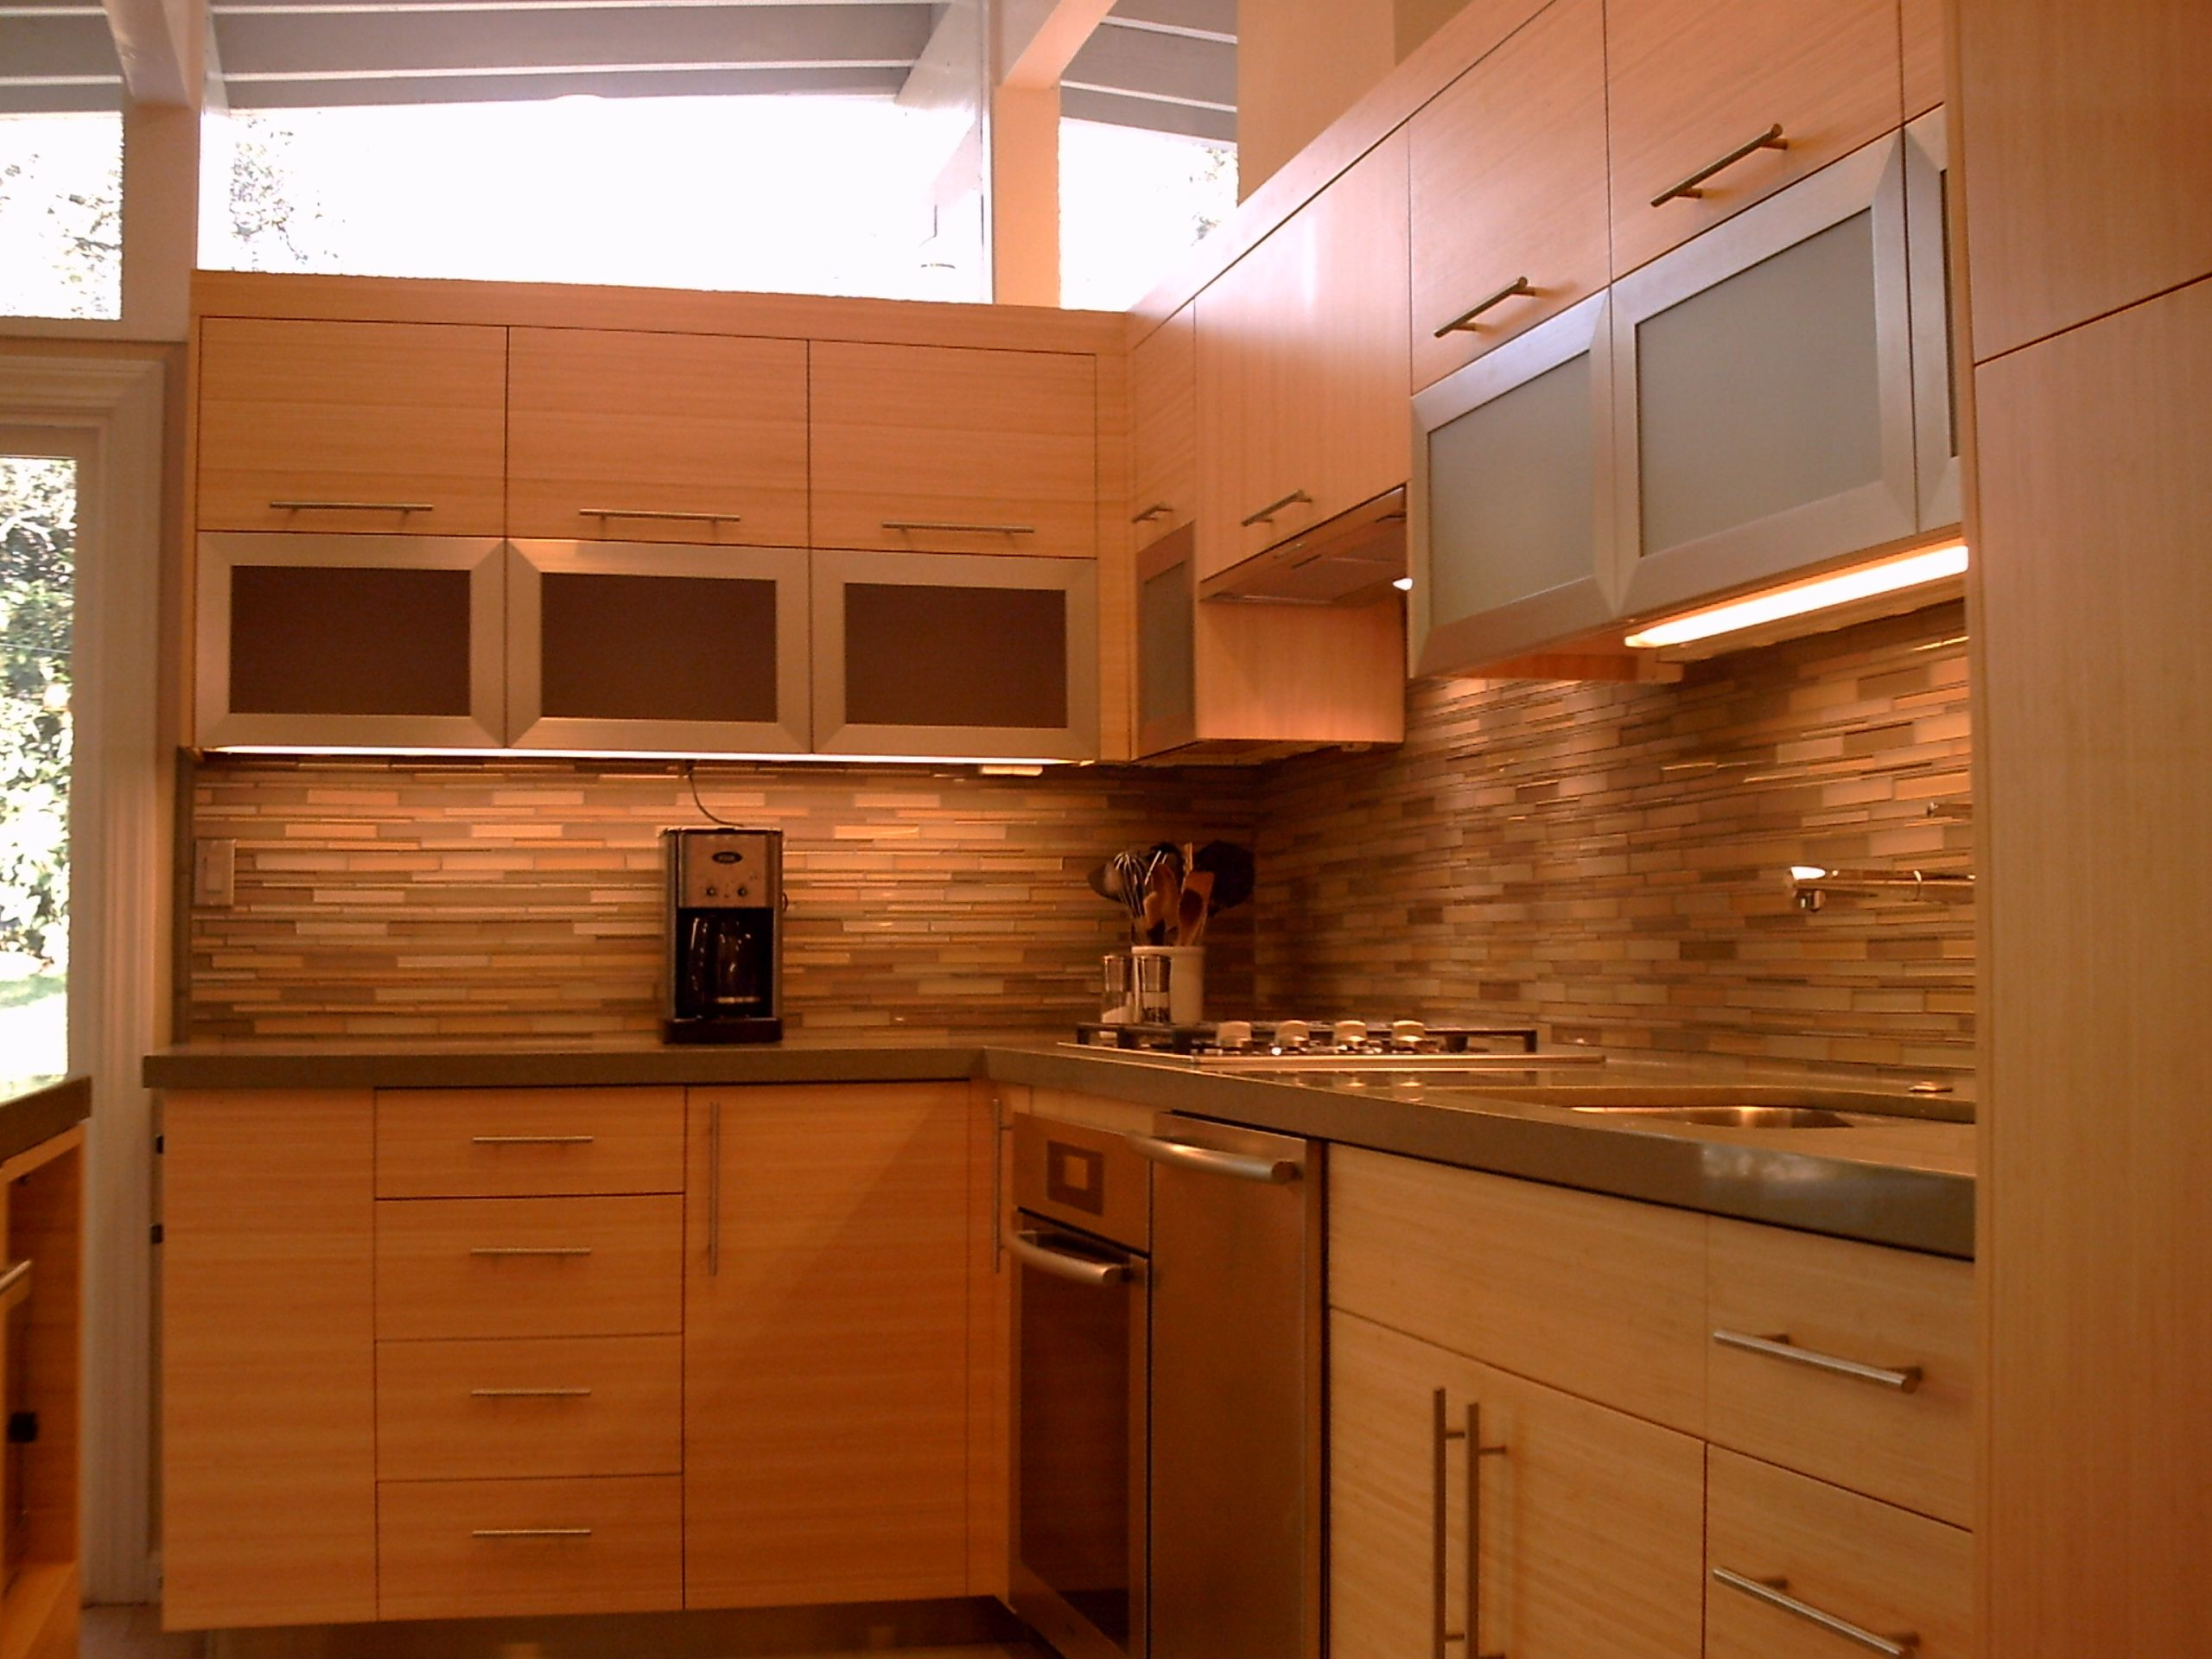 Bamboo Kitchen Remodel, entry way, the cab doors lift up ...